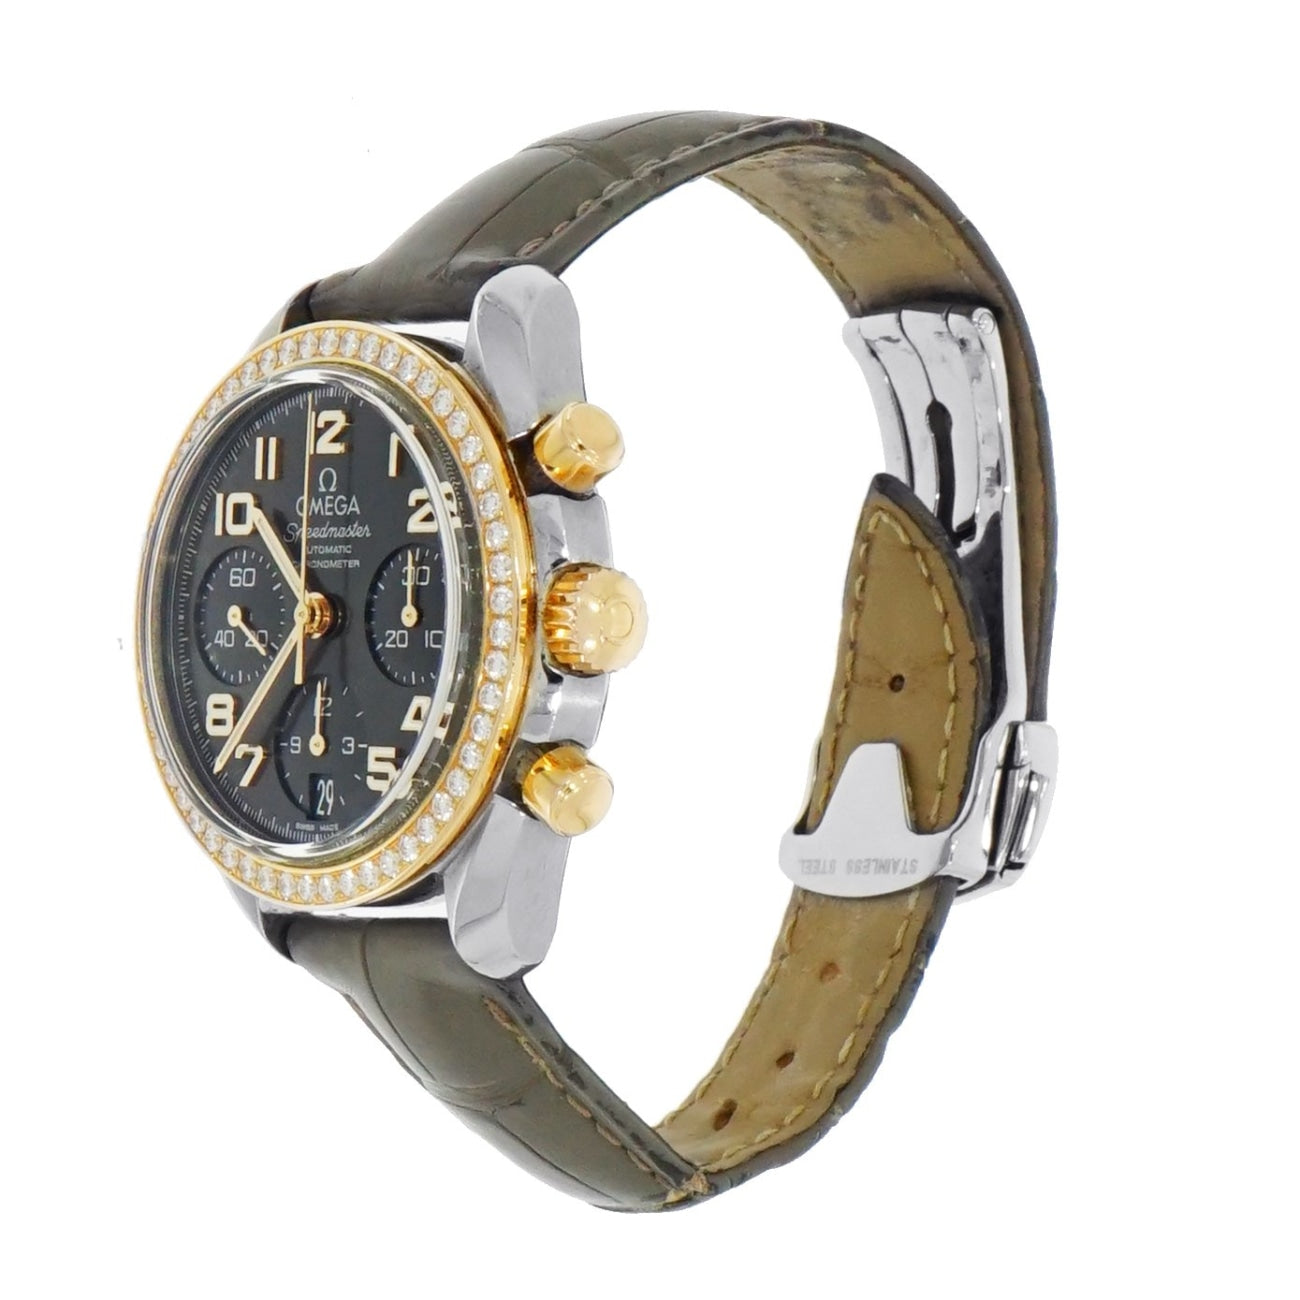 Pre-Owned Omega Watches - Ladys Speedmaster chronograph | Manfredi Jewels